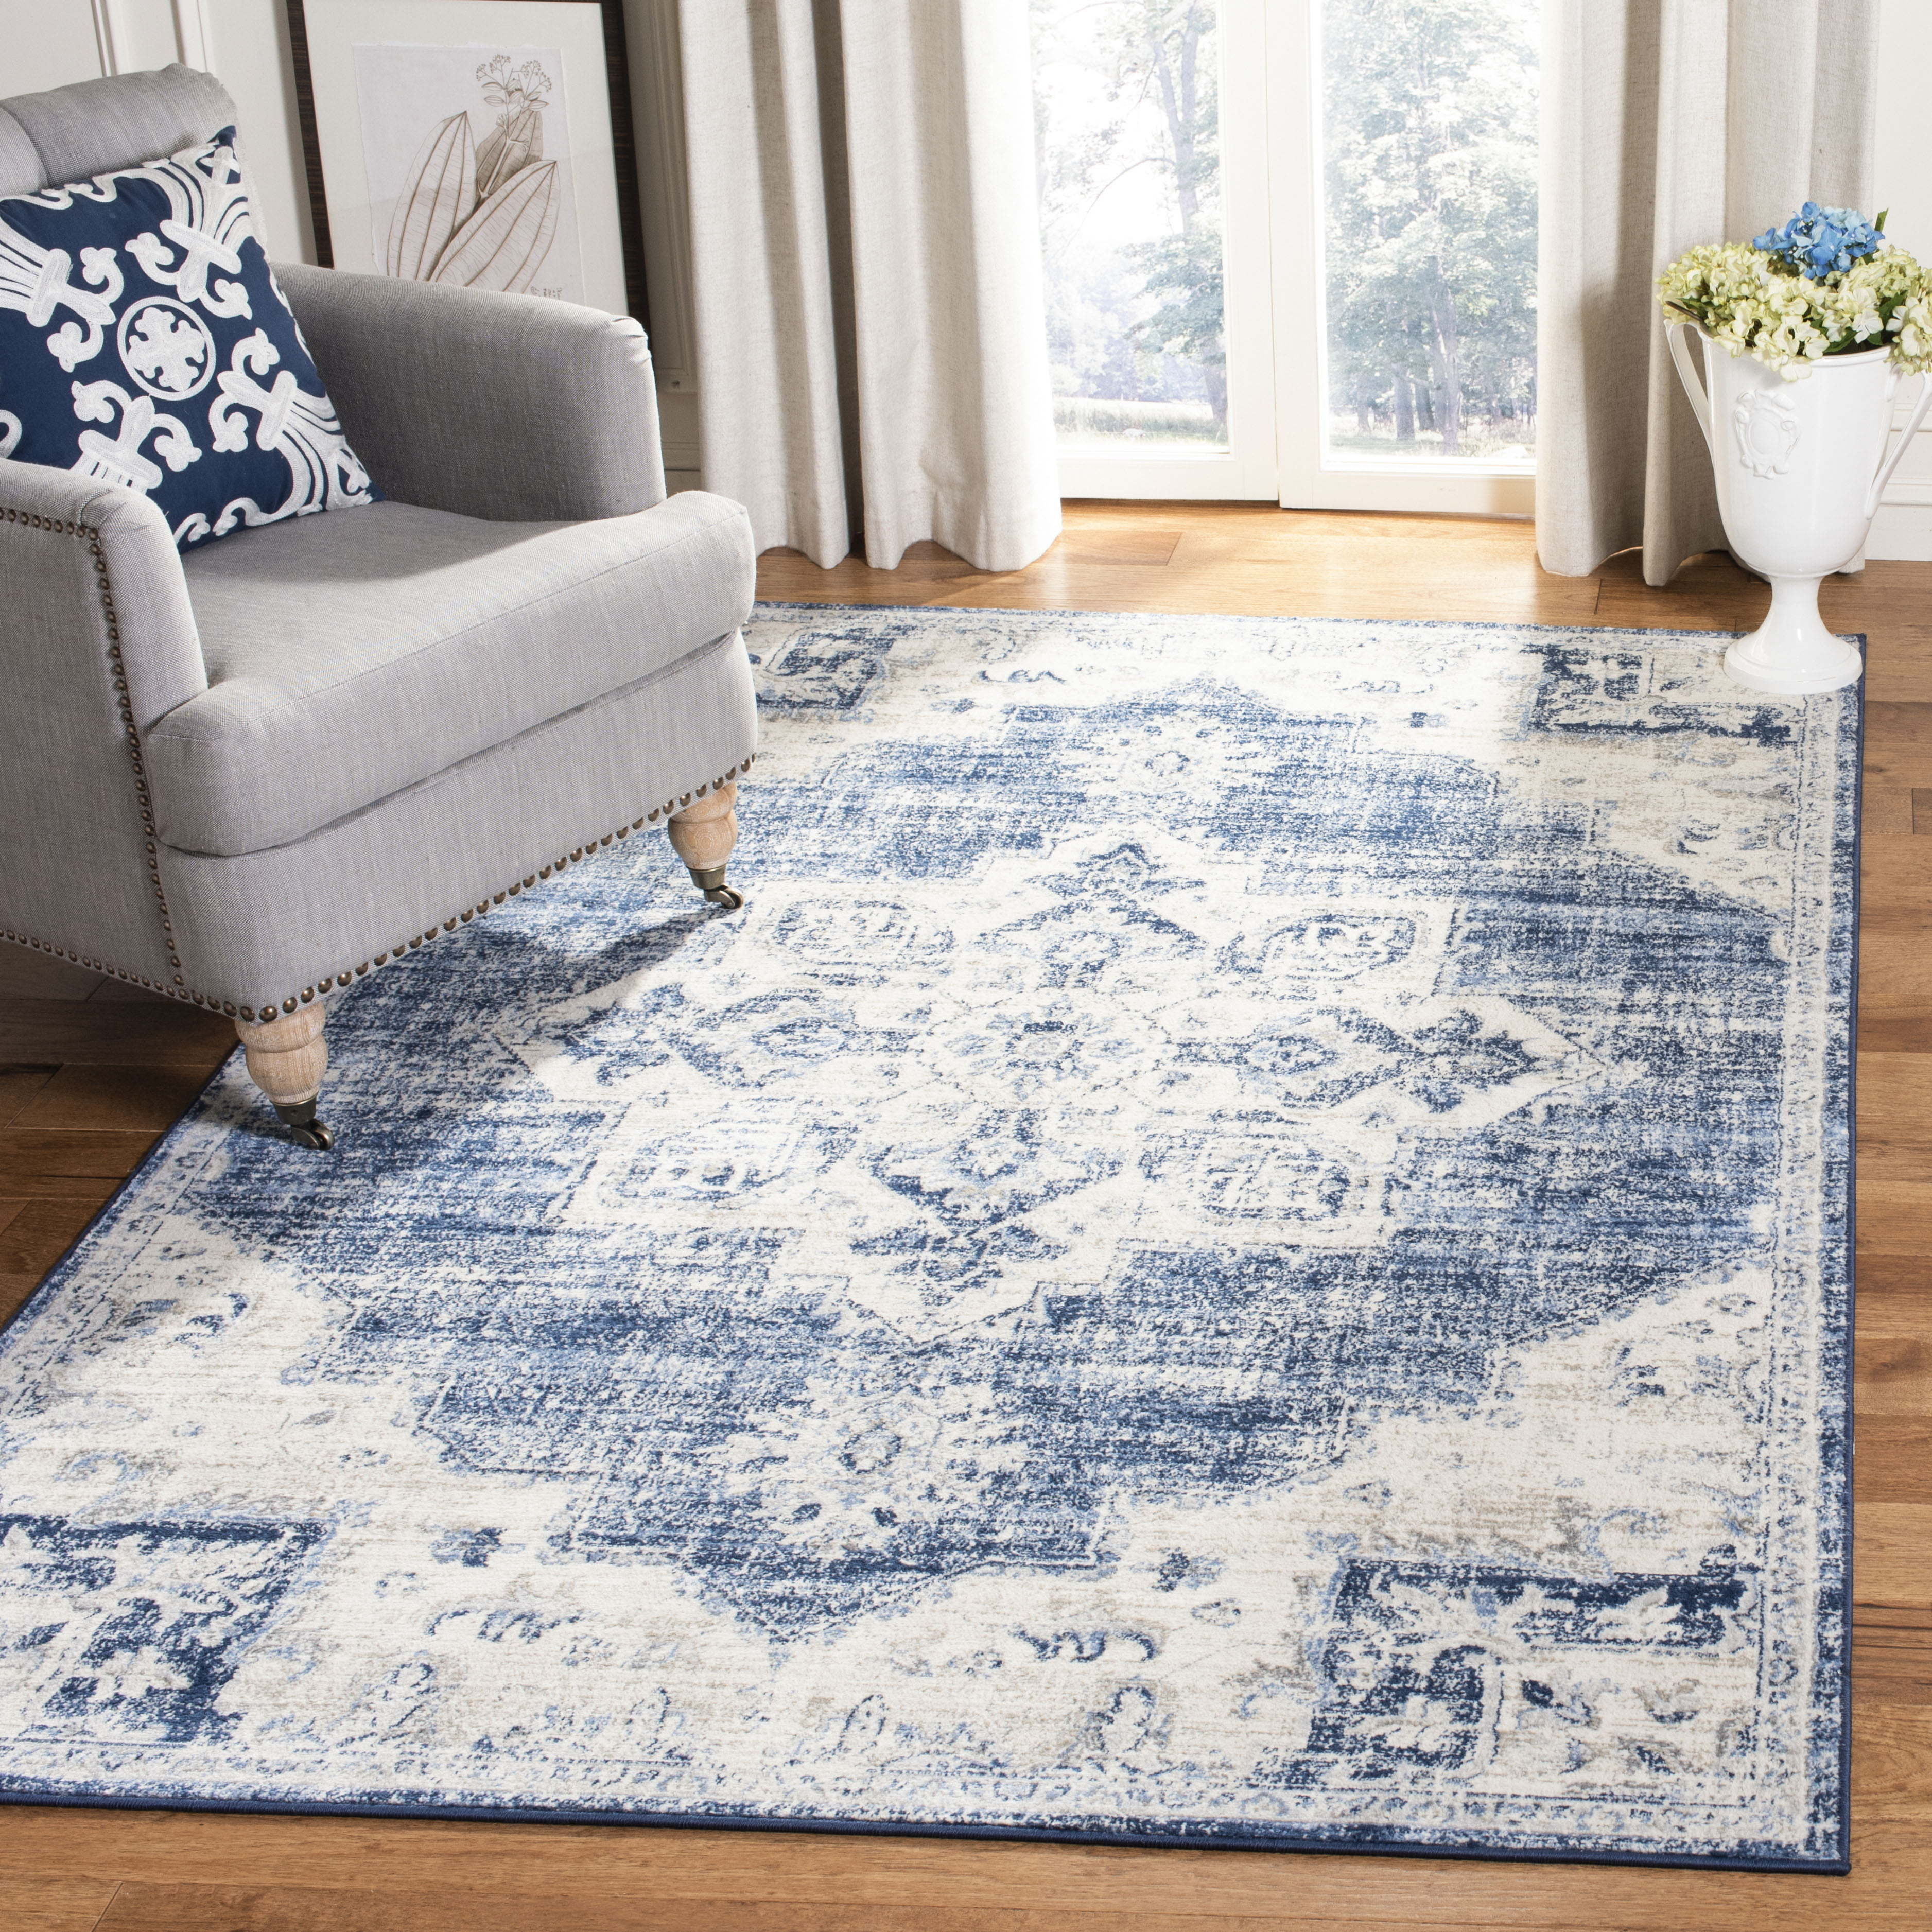 Safavieh Brentwood Jameson Floral Bordered Area Rug Or